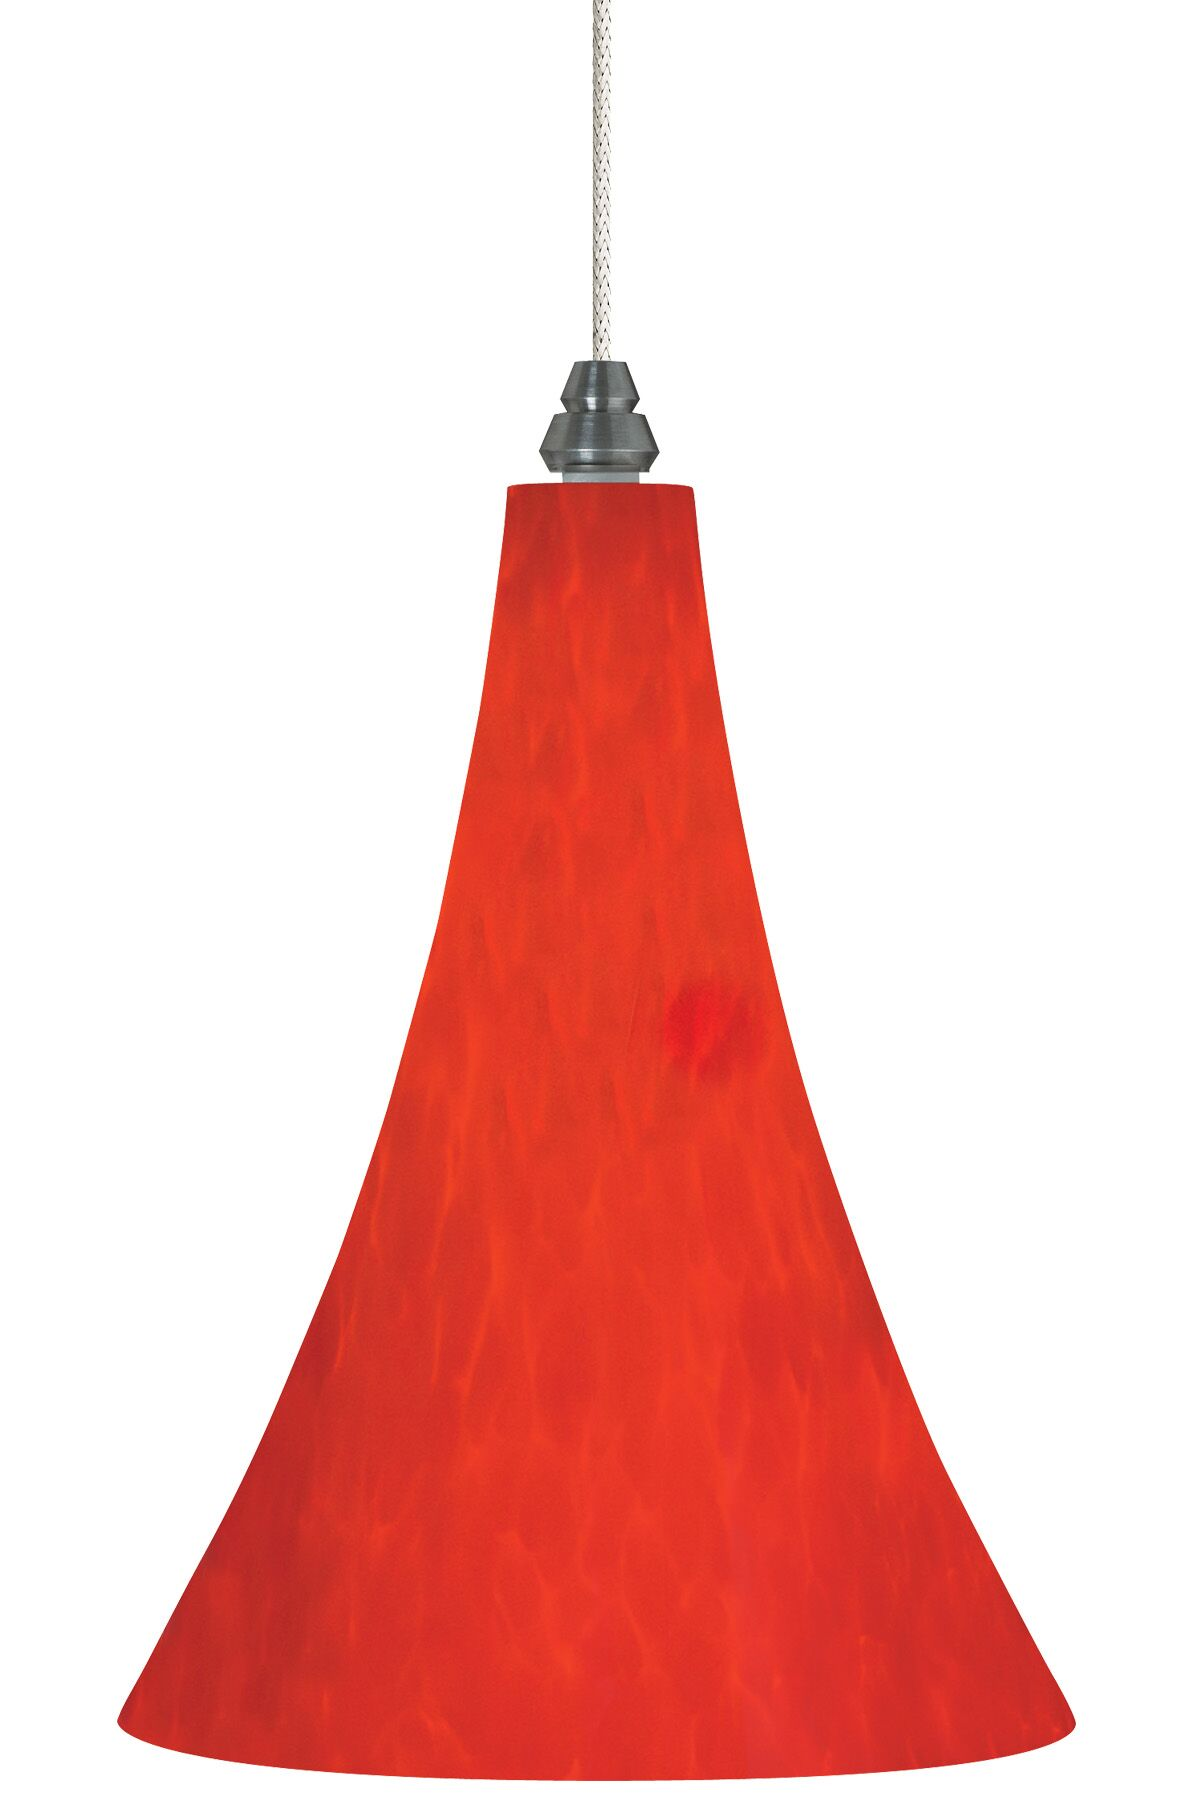 Melrose 1-Light Cone Pendant Bulb Type: Halogen, Finish: Antique Bronze, Shade Color: Red